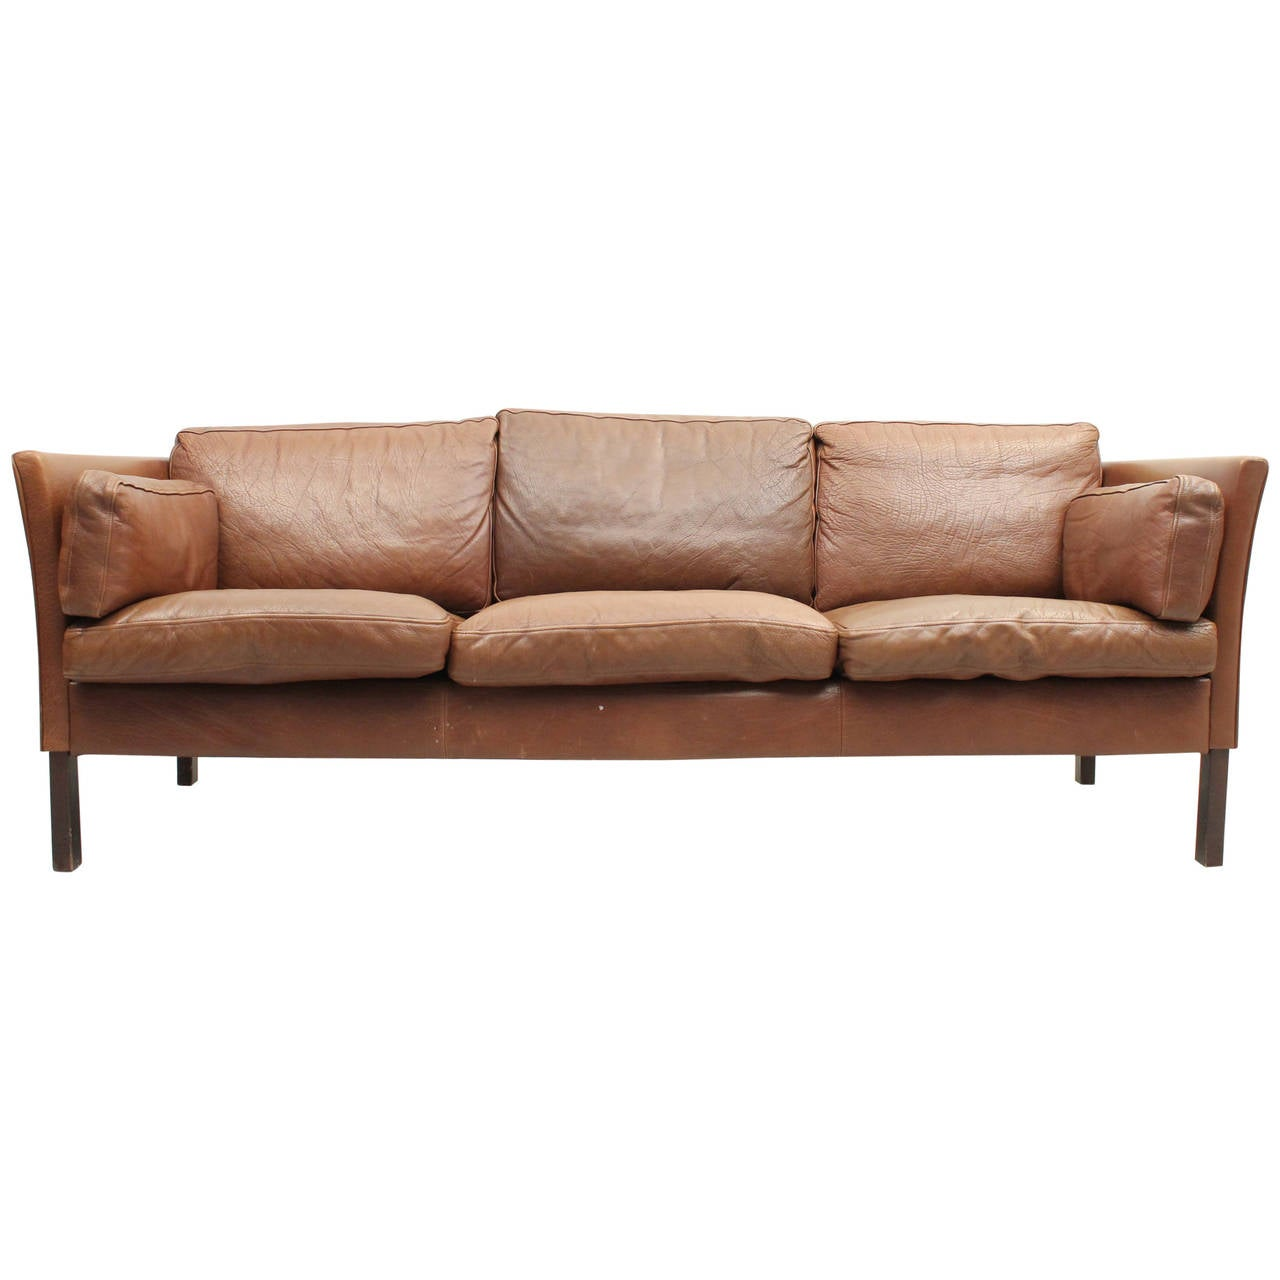 Mid Century Modern Sofas: Danish Mid Century Modern Leather Sofa At 1stdibs